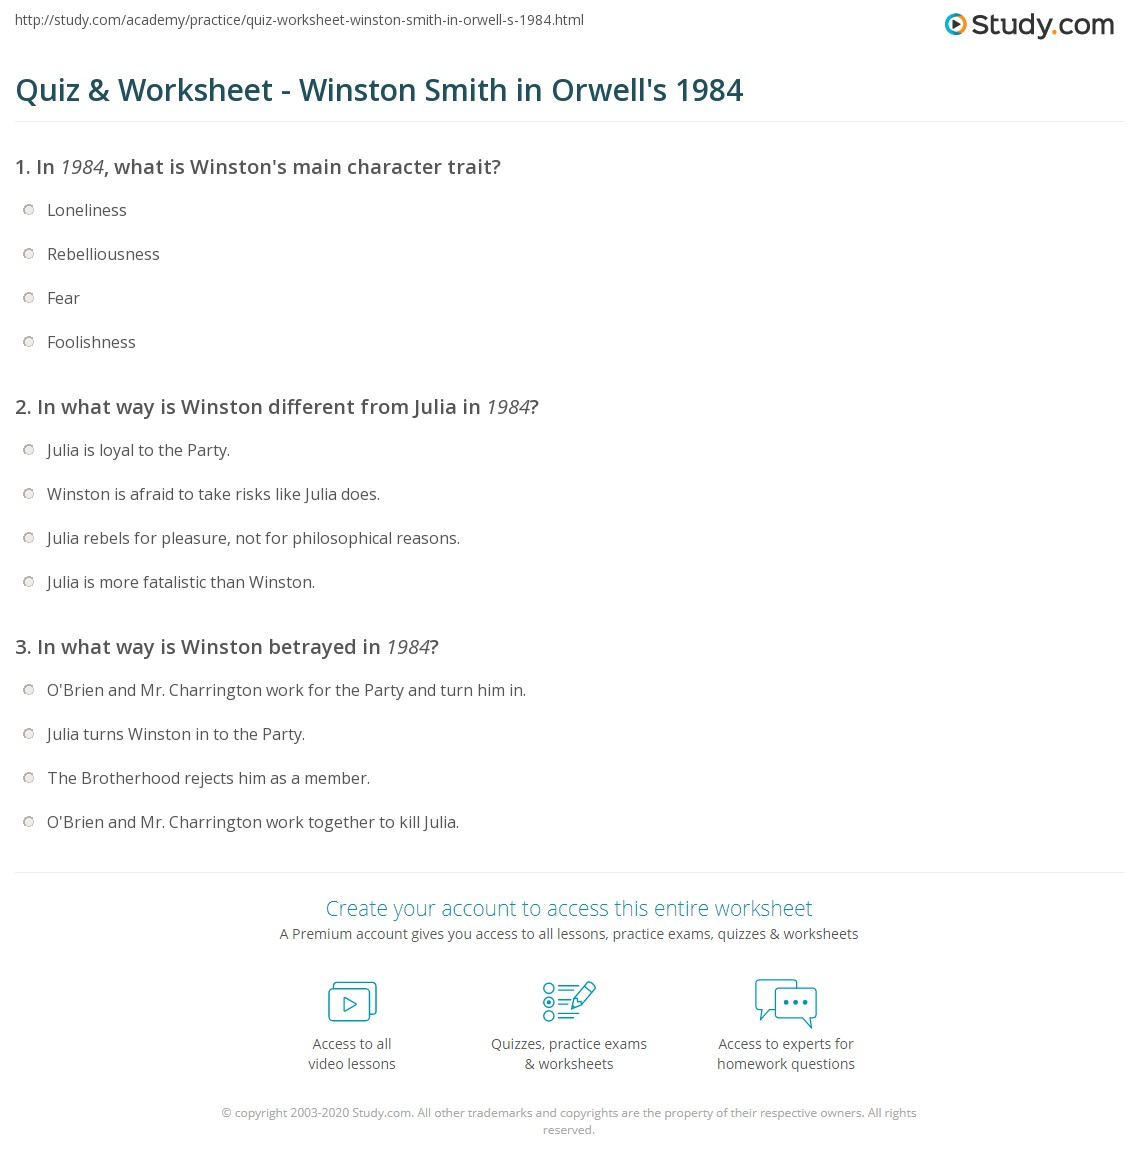 quiz worksheet winston smith in orwell s com print winston smith in 1984 character traits analysis worksheet